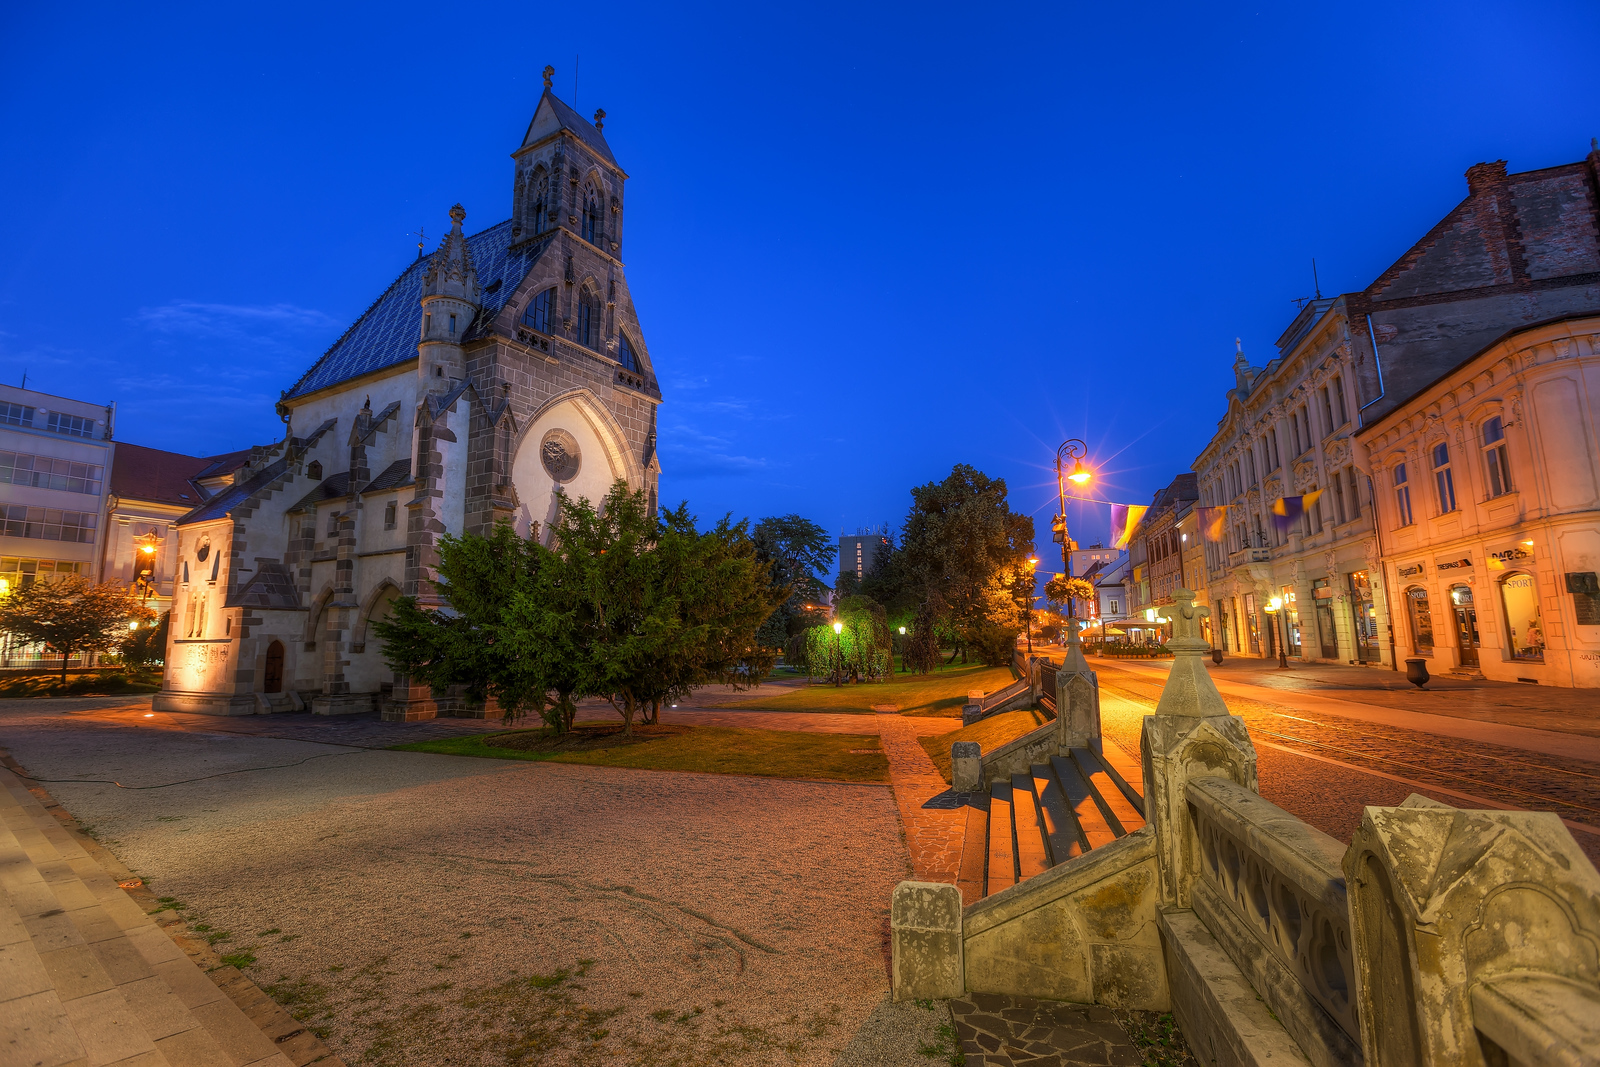 Blue Hour in Kosice The center of Kosice give many great photo opportunities.